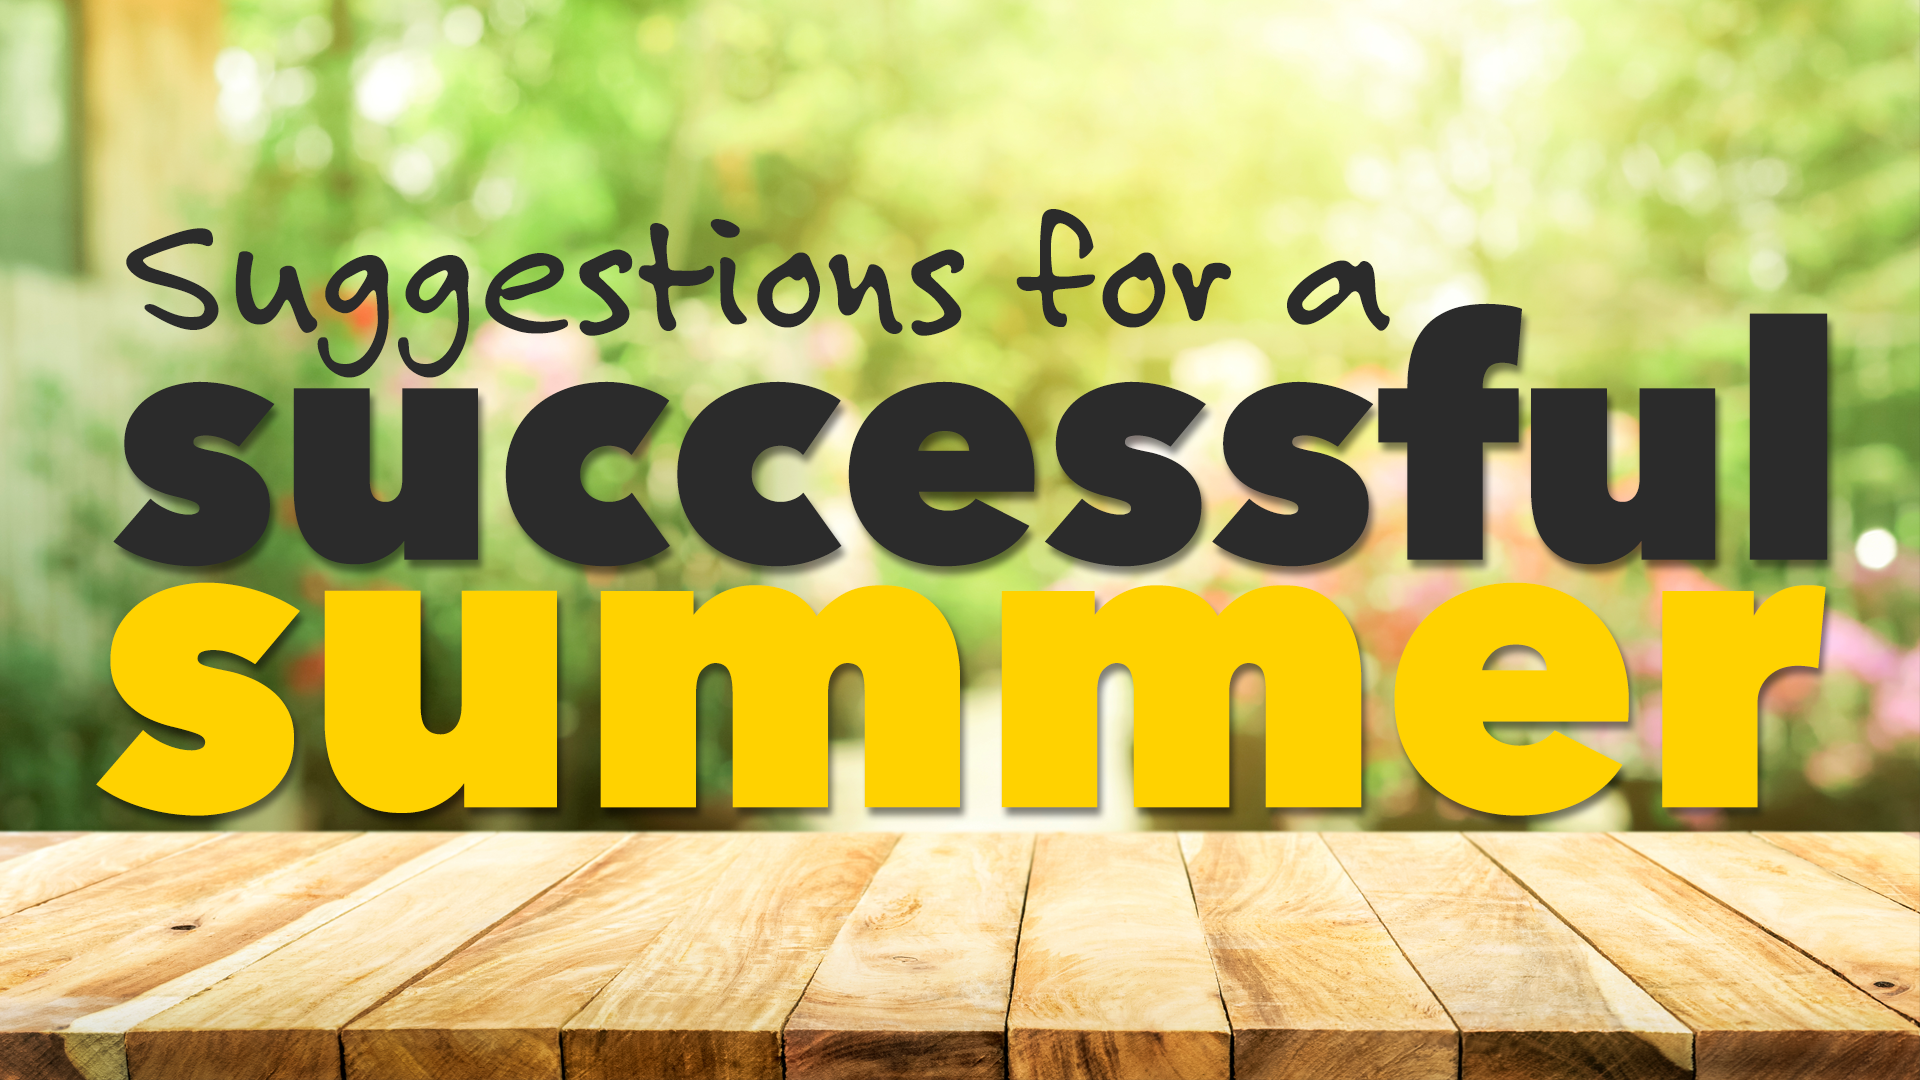 Suggestions for a Successful Summer (Part 5)